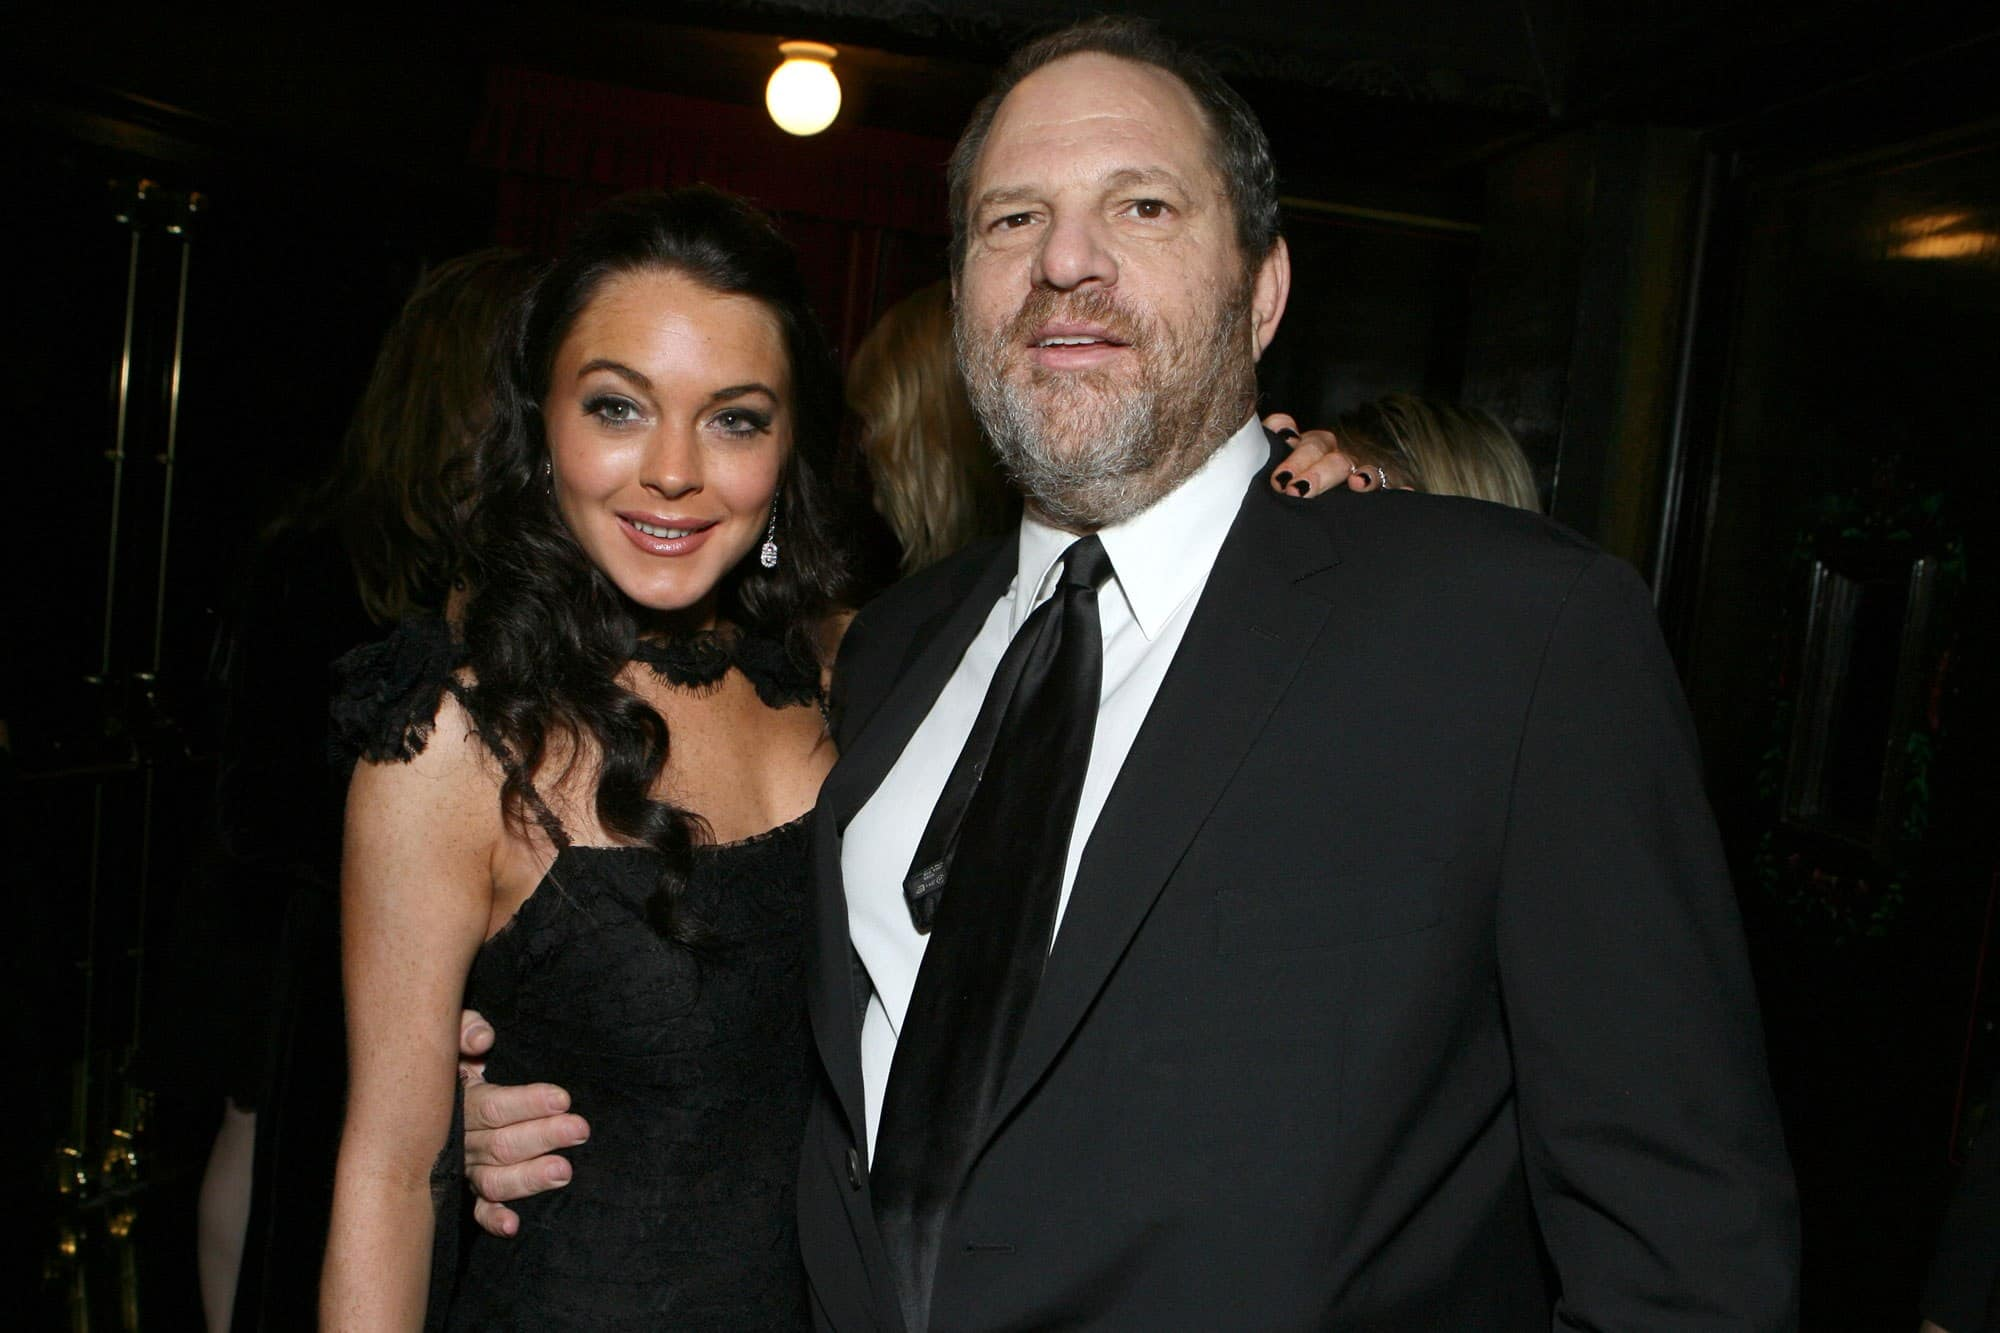 Lindsay Lohan Comes Out In Support Of Harvey Weinstein